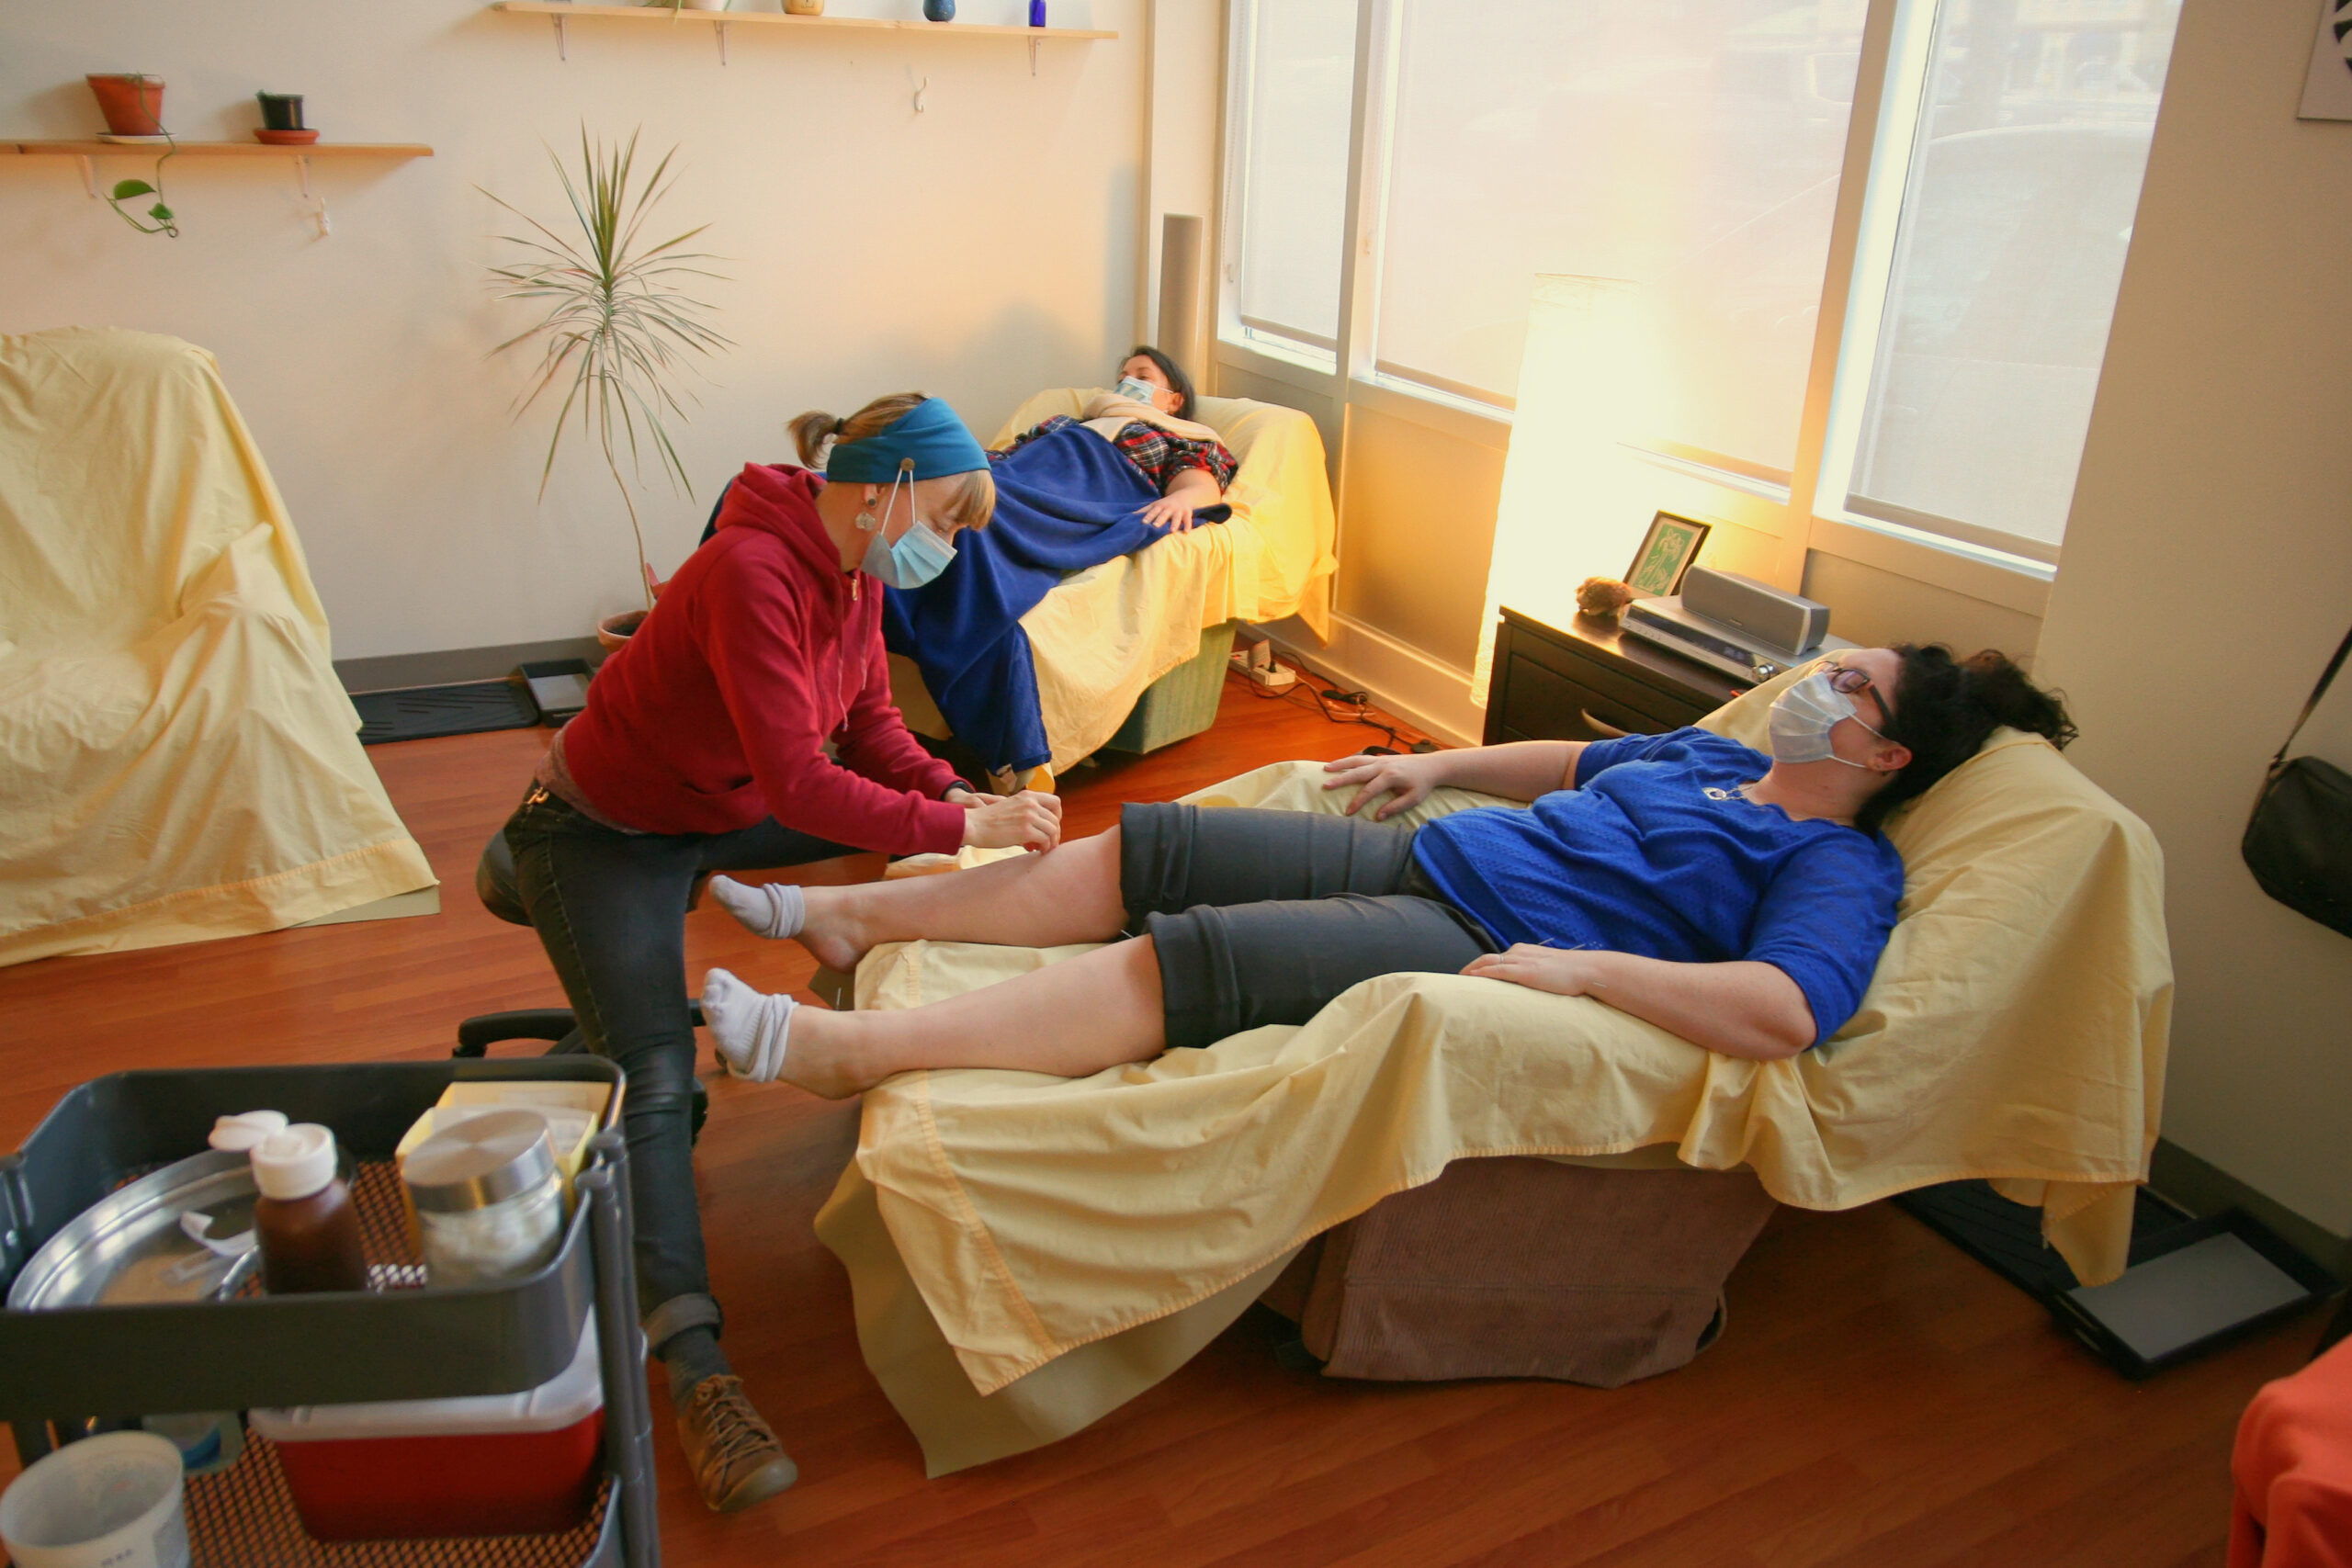 A person in a surgical mask and red hoodie set acupuncture needles into someone's leg while they lie back in a recliner covered in a yellow sheet. In the background another masked patient leans back in a recliner covered in a yellow sheet under a blue blanket.